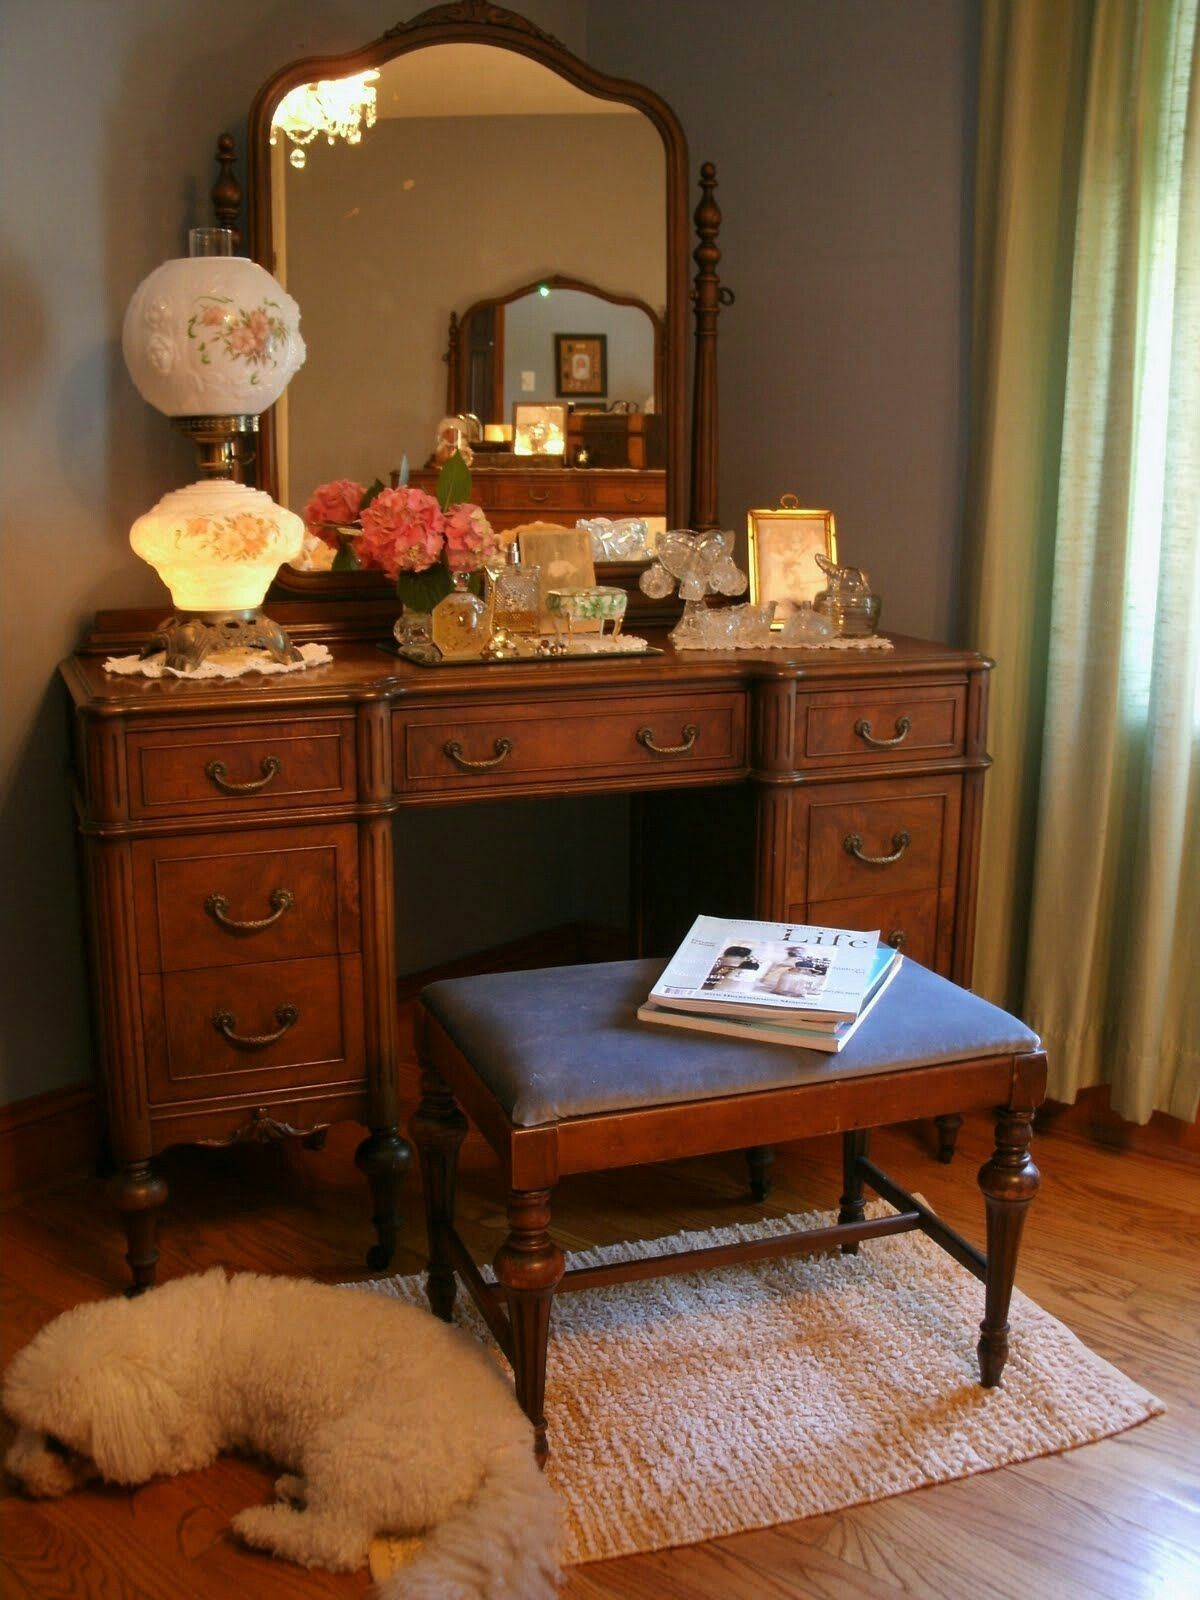 Convallaria maialis apartment pinterest shabby vanities and cabin